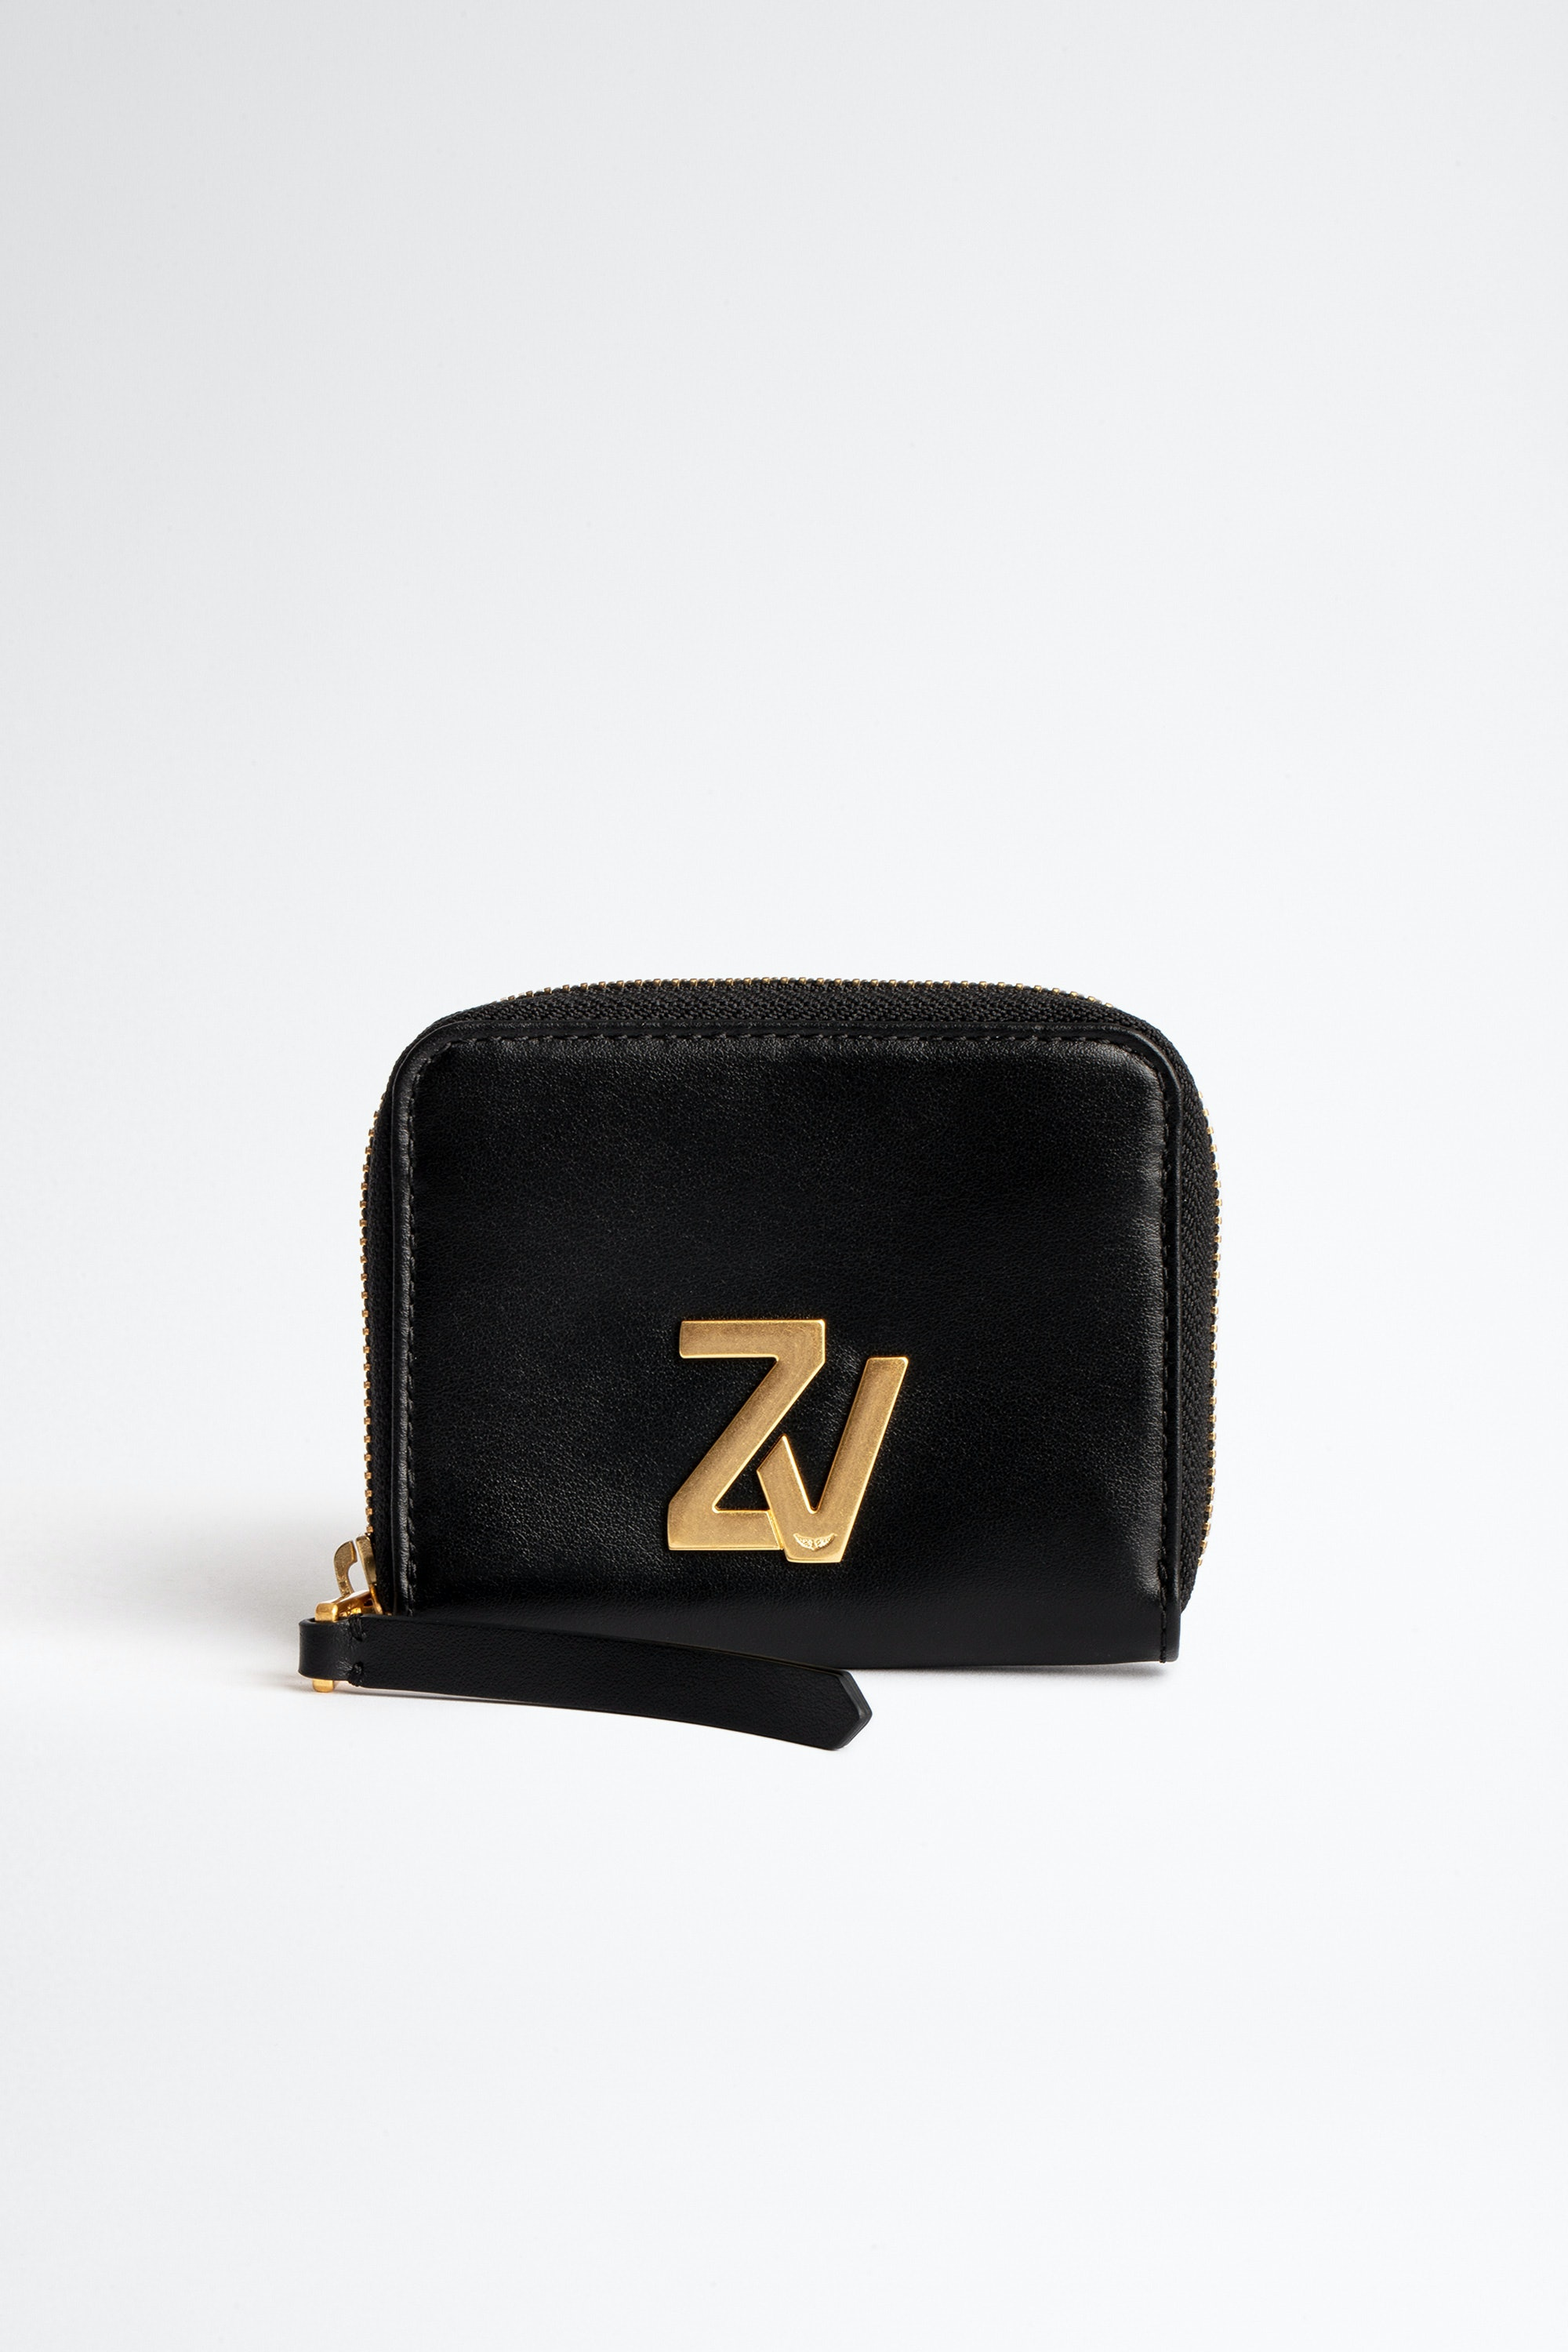 Cartera ZV Initiale Le Compact